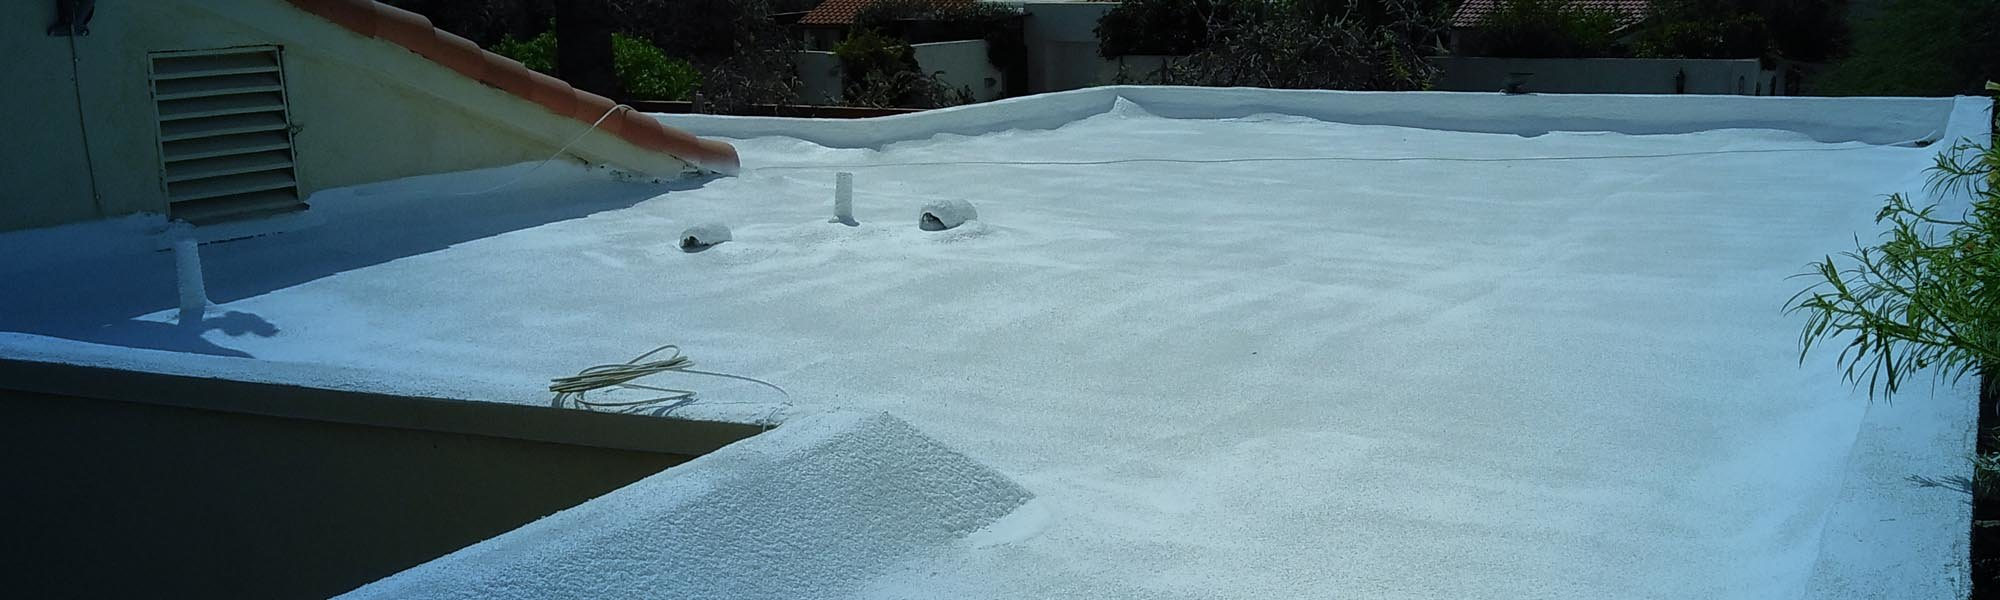 Spray Foam Roofing Arizona